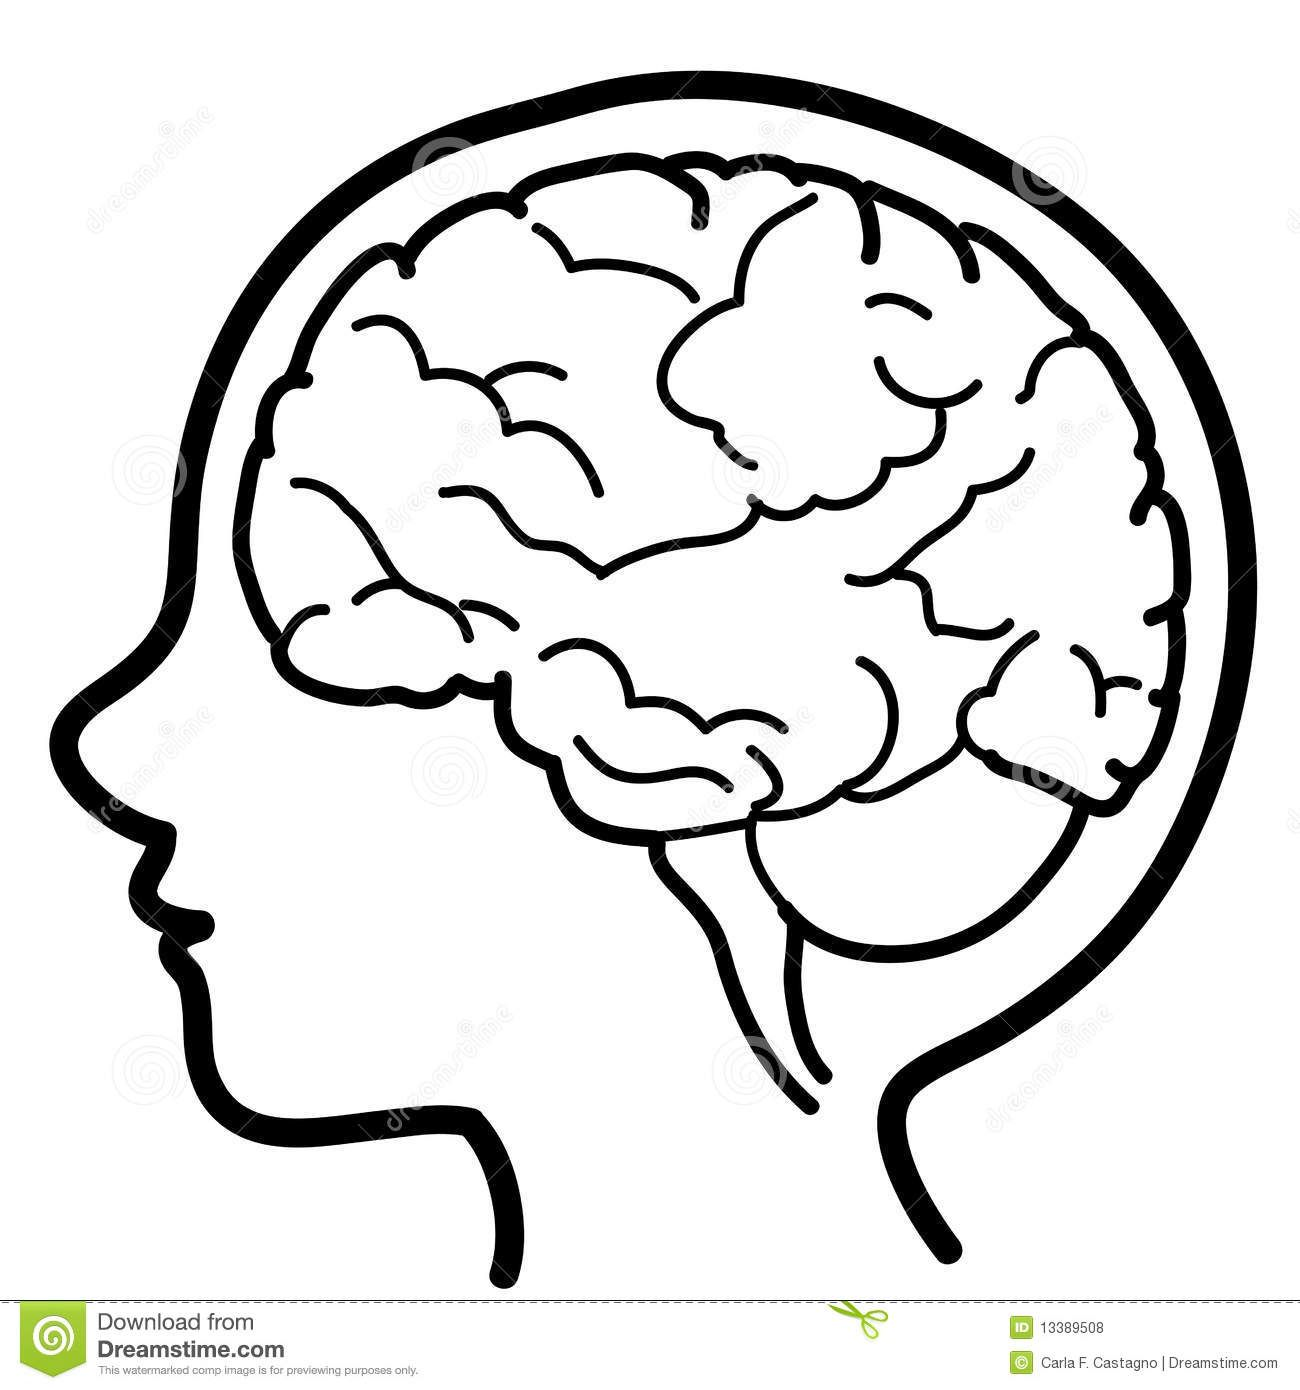 Child Profile With Visible Brain Vector Illustration Of Kid Profile With Black Sponsored Ad Ad Profile Brain Drawing Human Body Activities Brain Icon